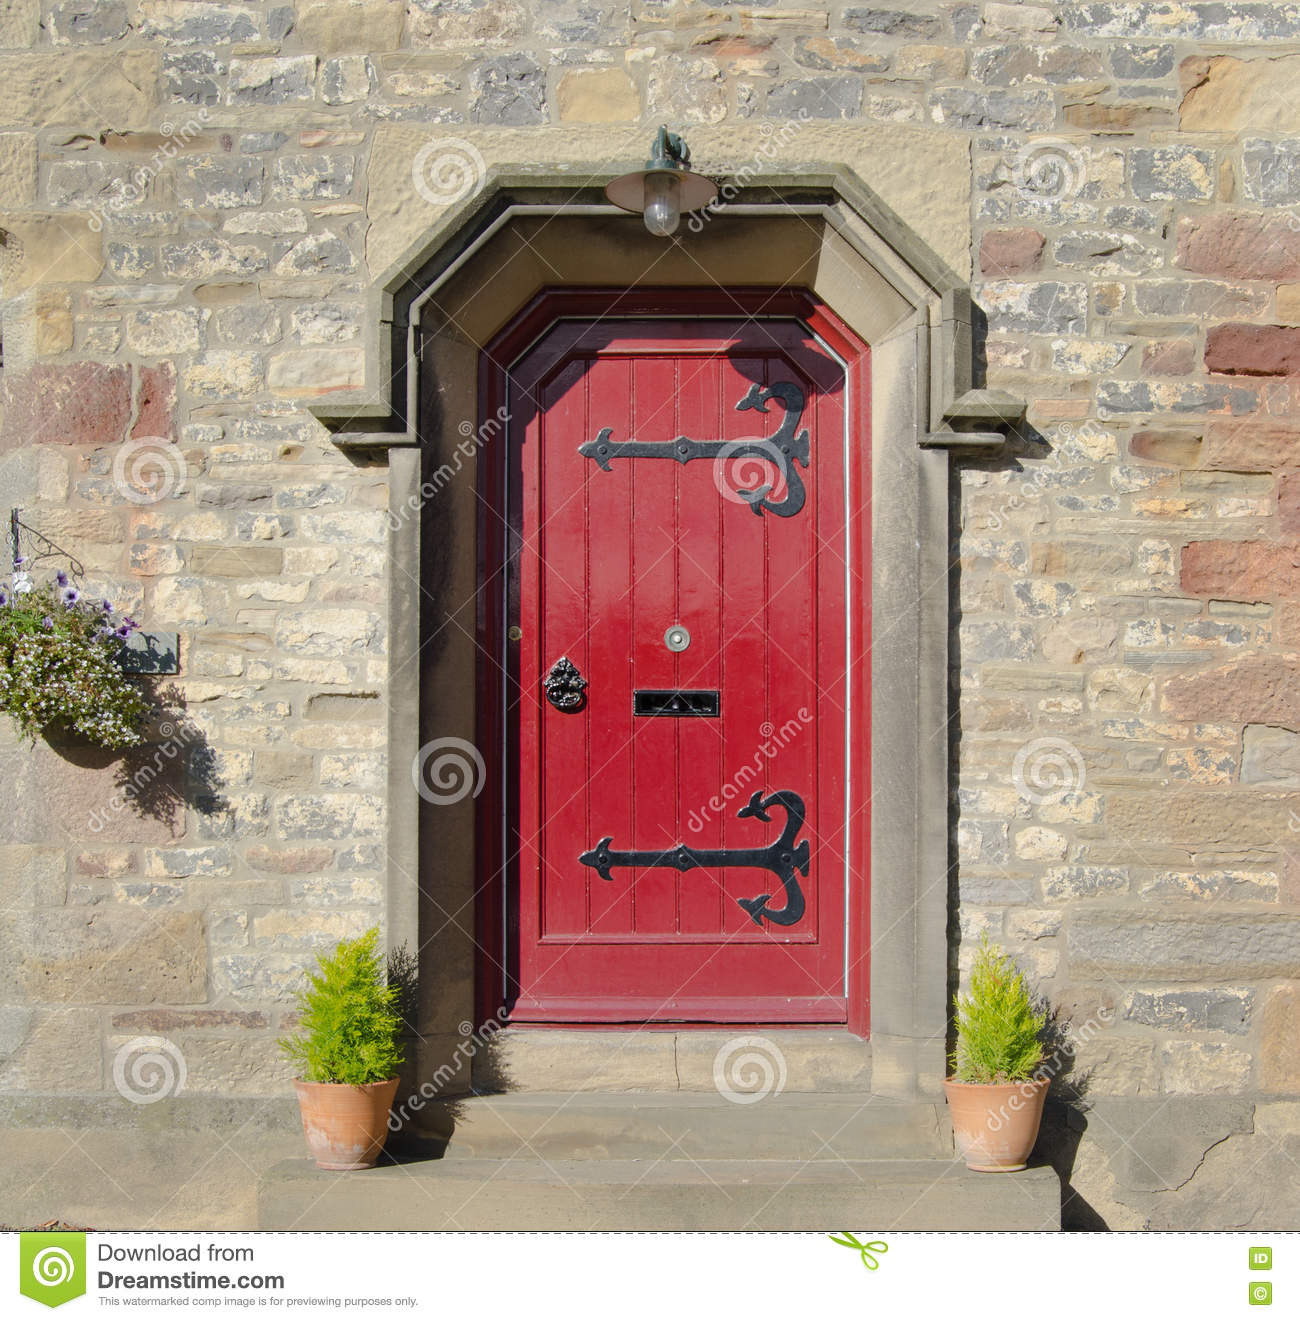 Gothic Red Front Door Stock Image. Image Of Front